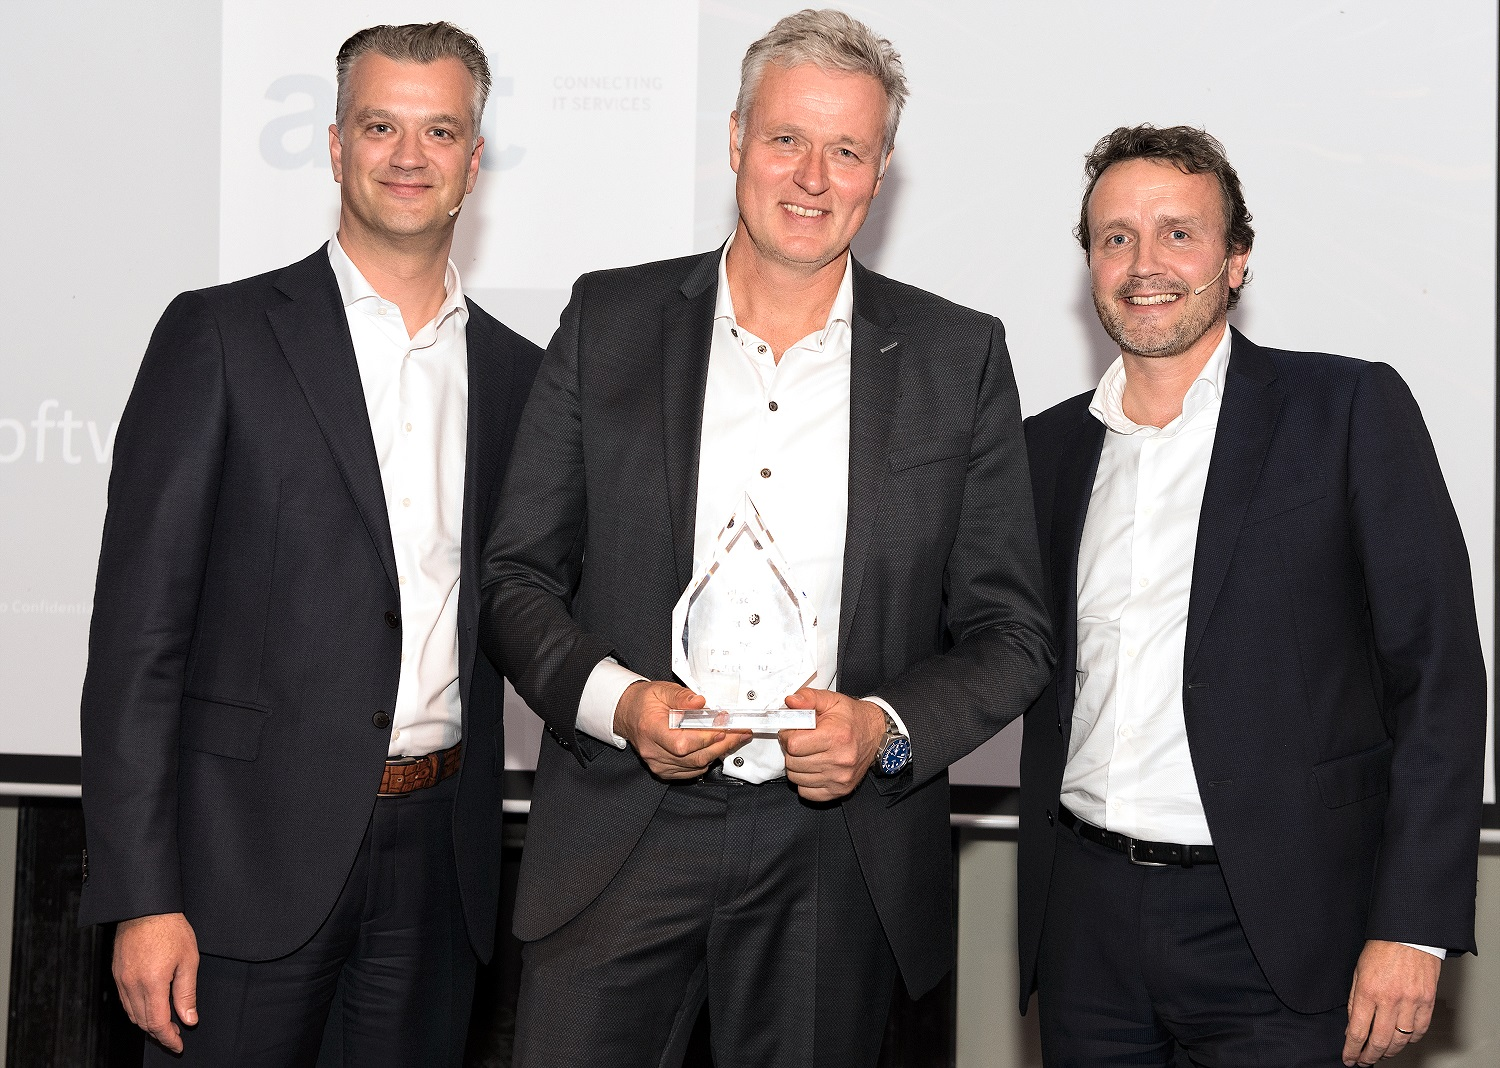 Avit wint Cisco awards voor software en customer experience